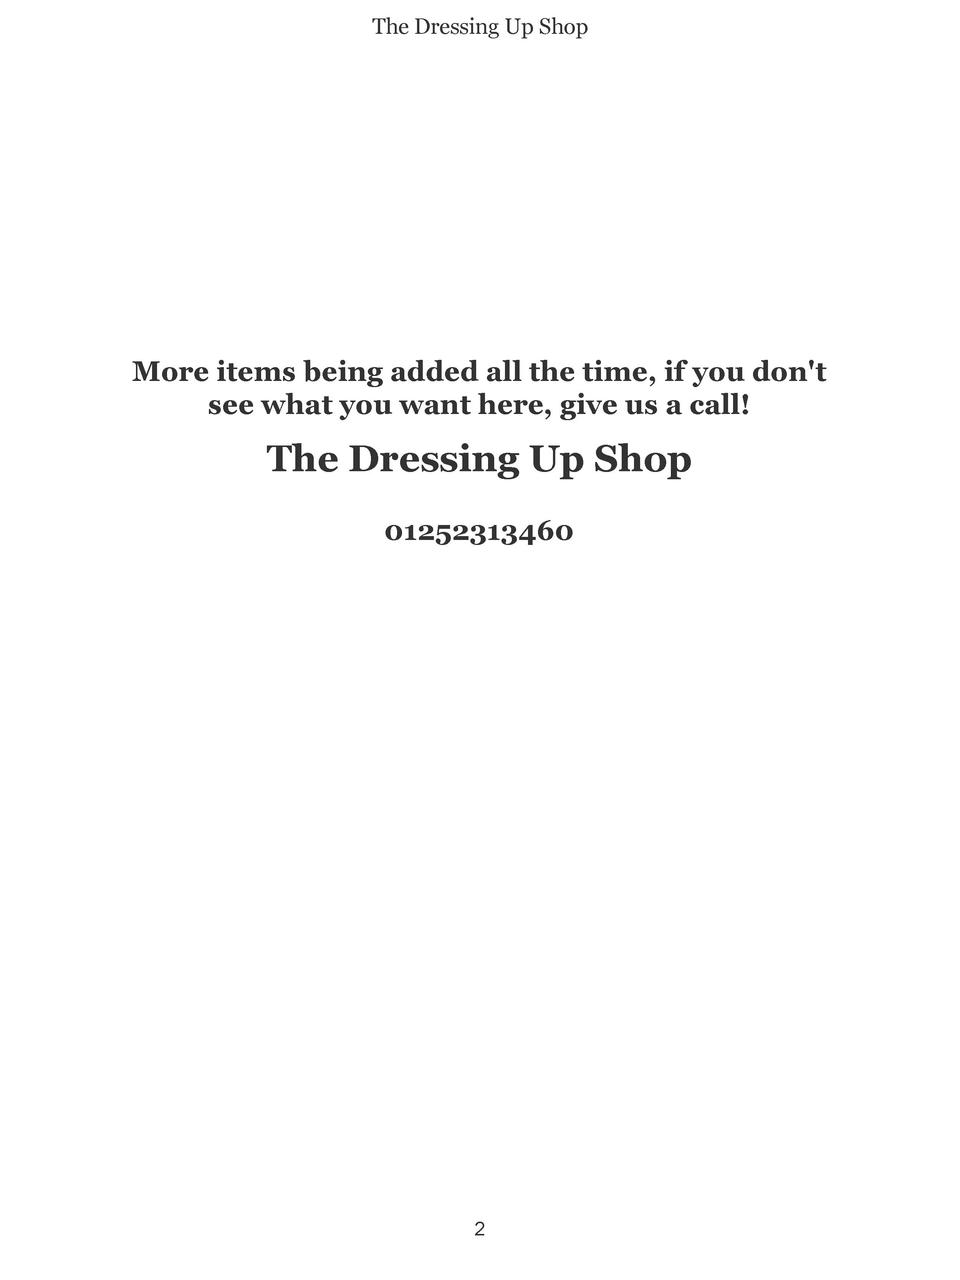 The Dressing Up Shop  More items being added all the time, if you don t see what you want here, give us a call   The Dress...